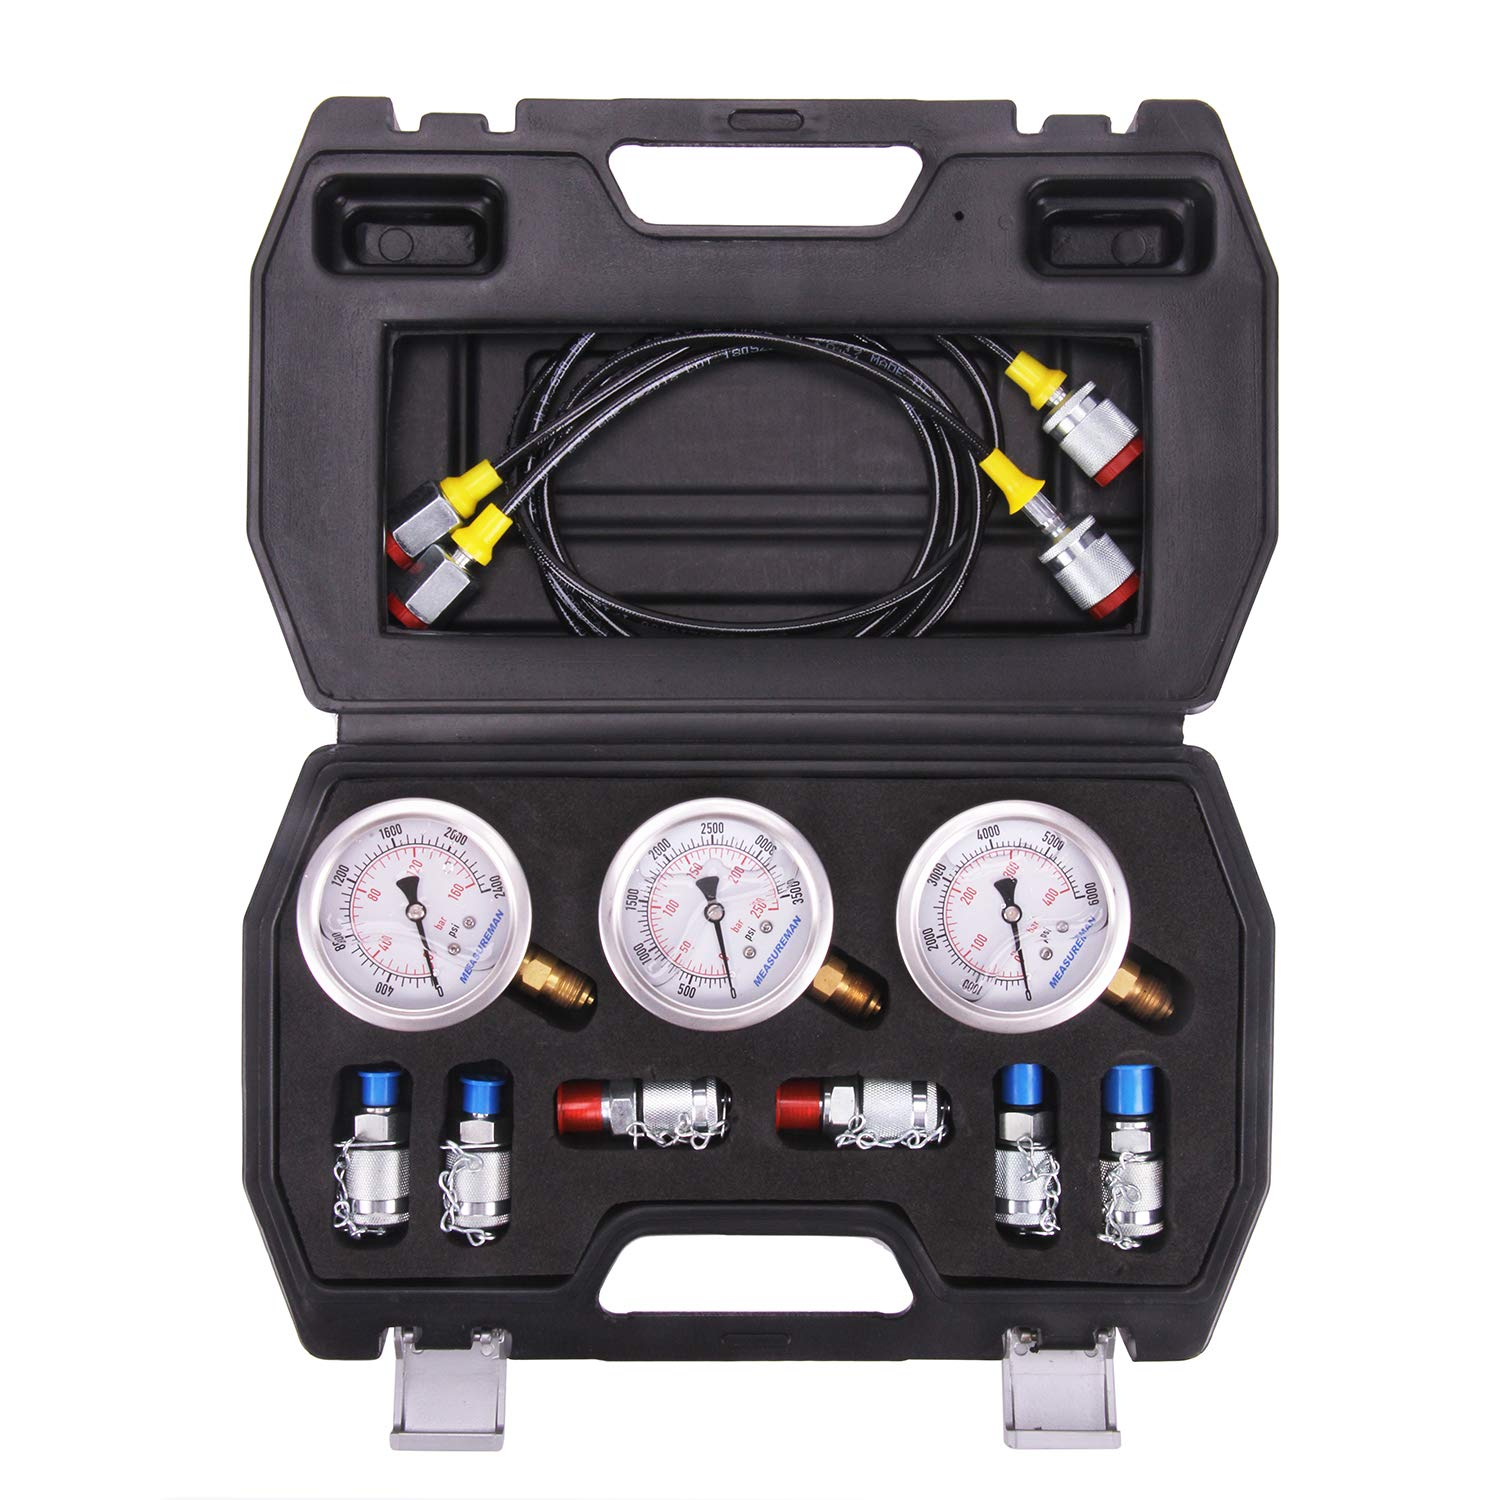 Portable Hydraulic Pressure Guage Test Coupling Kit for Excavator Construction Machinery Hydraulic Pressure Test Kit